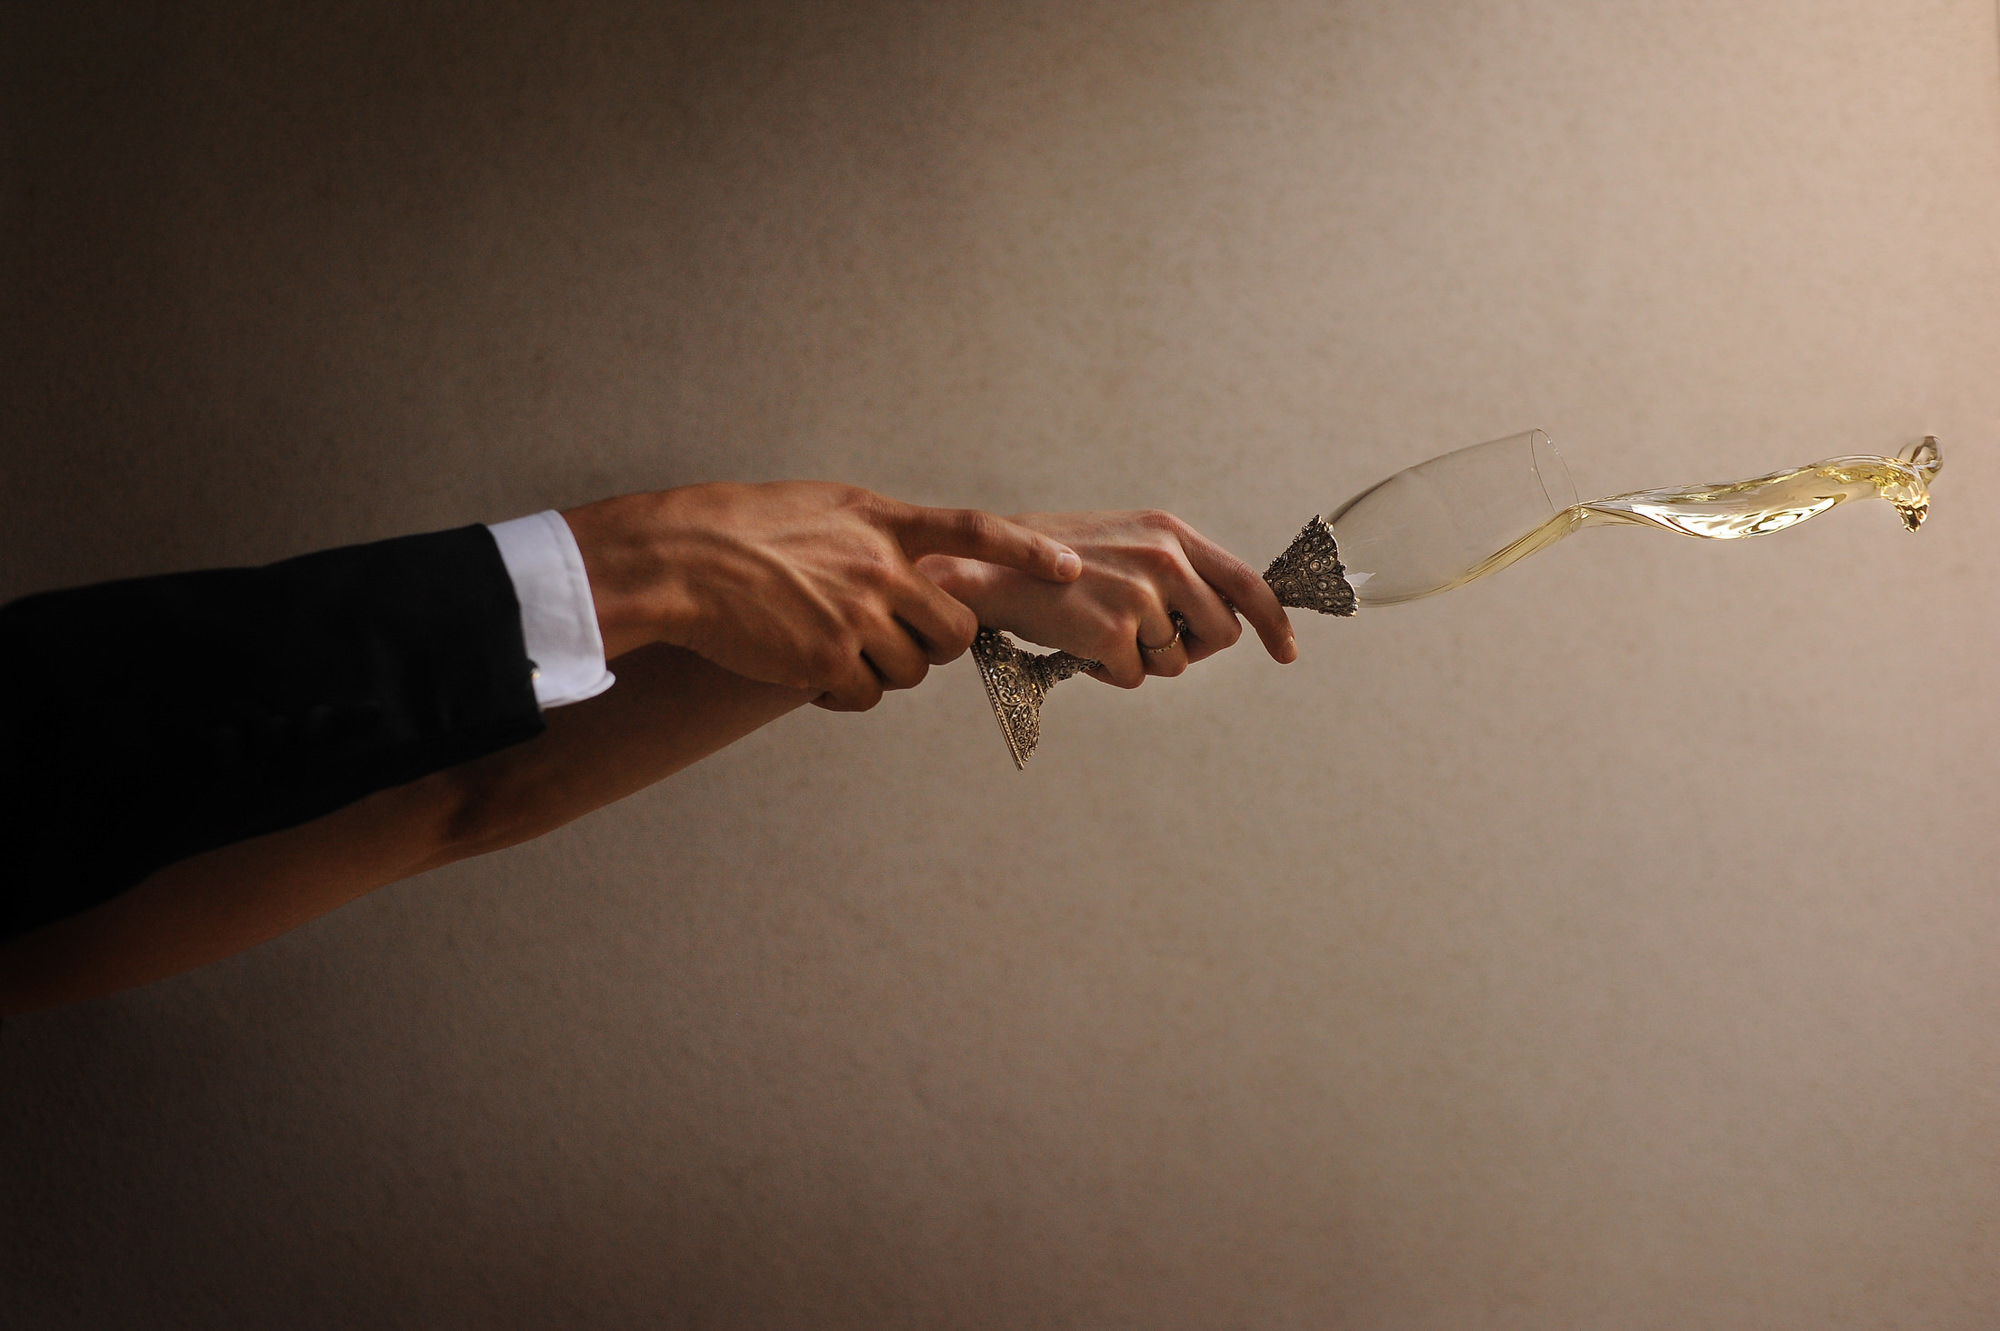 Artistic portrait of hands throwing champagne - photo by Daniel Aguilar